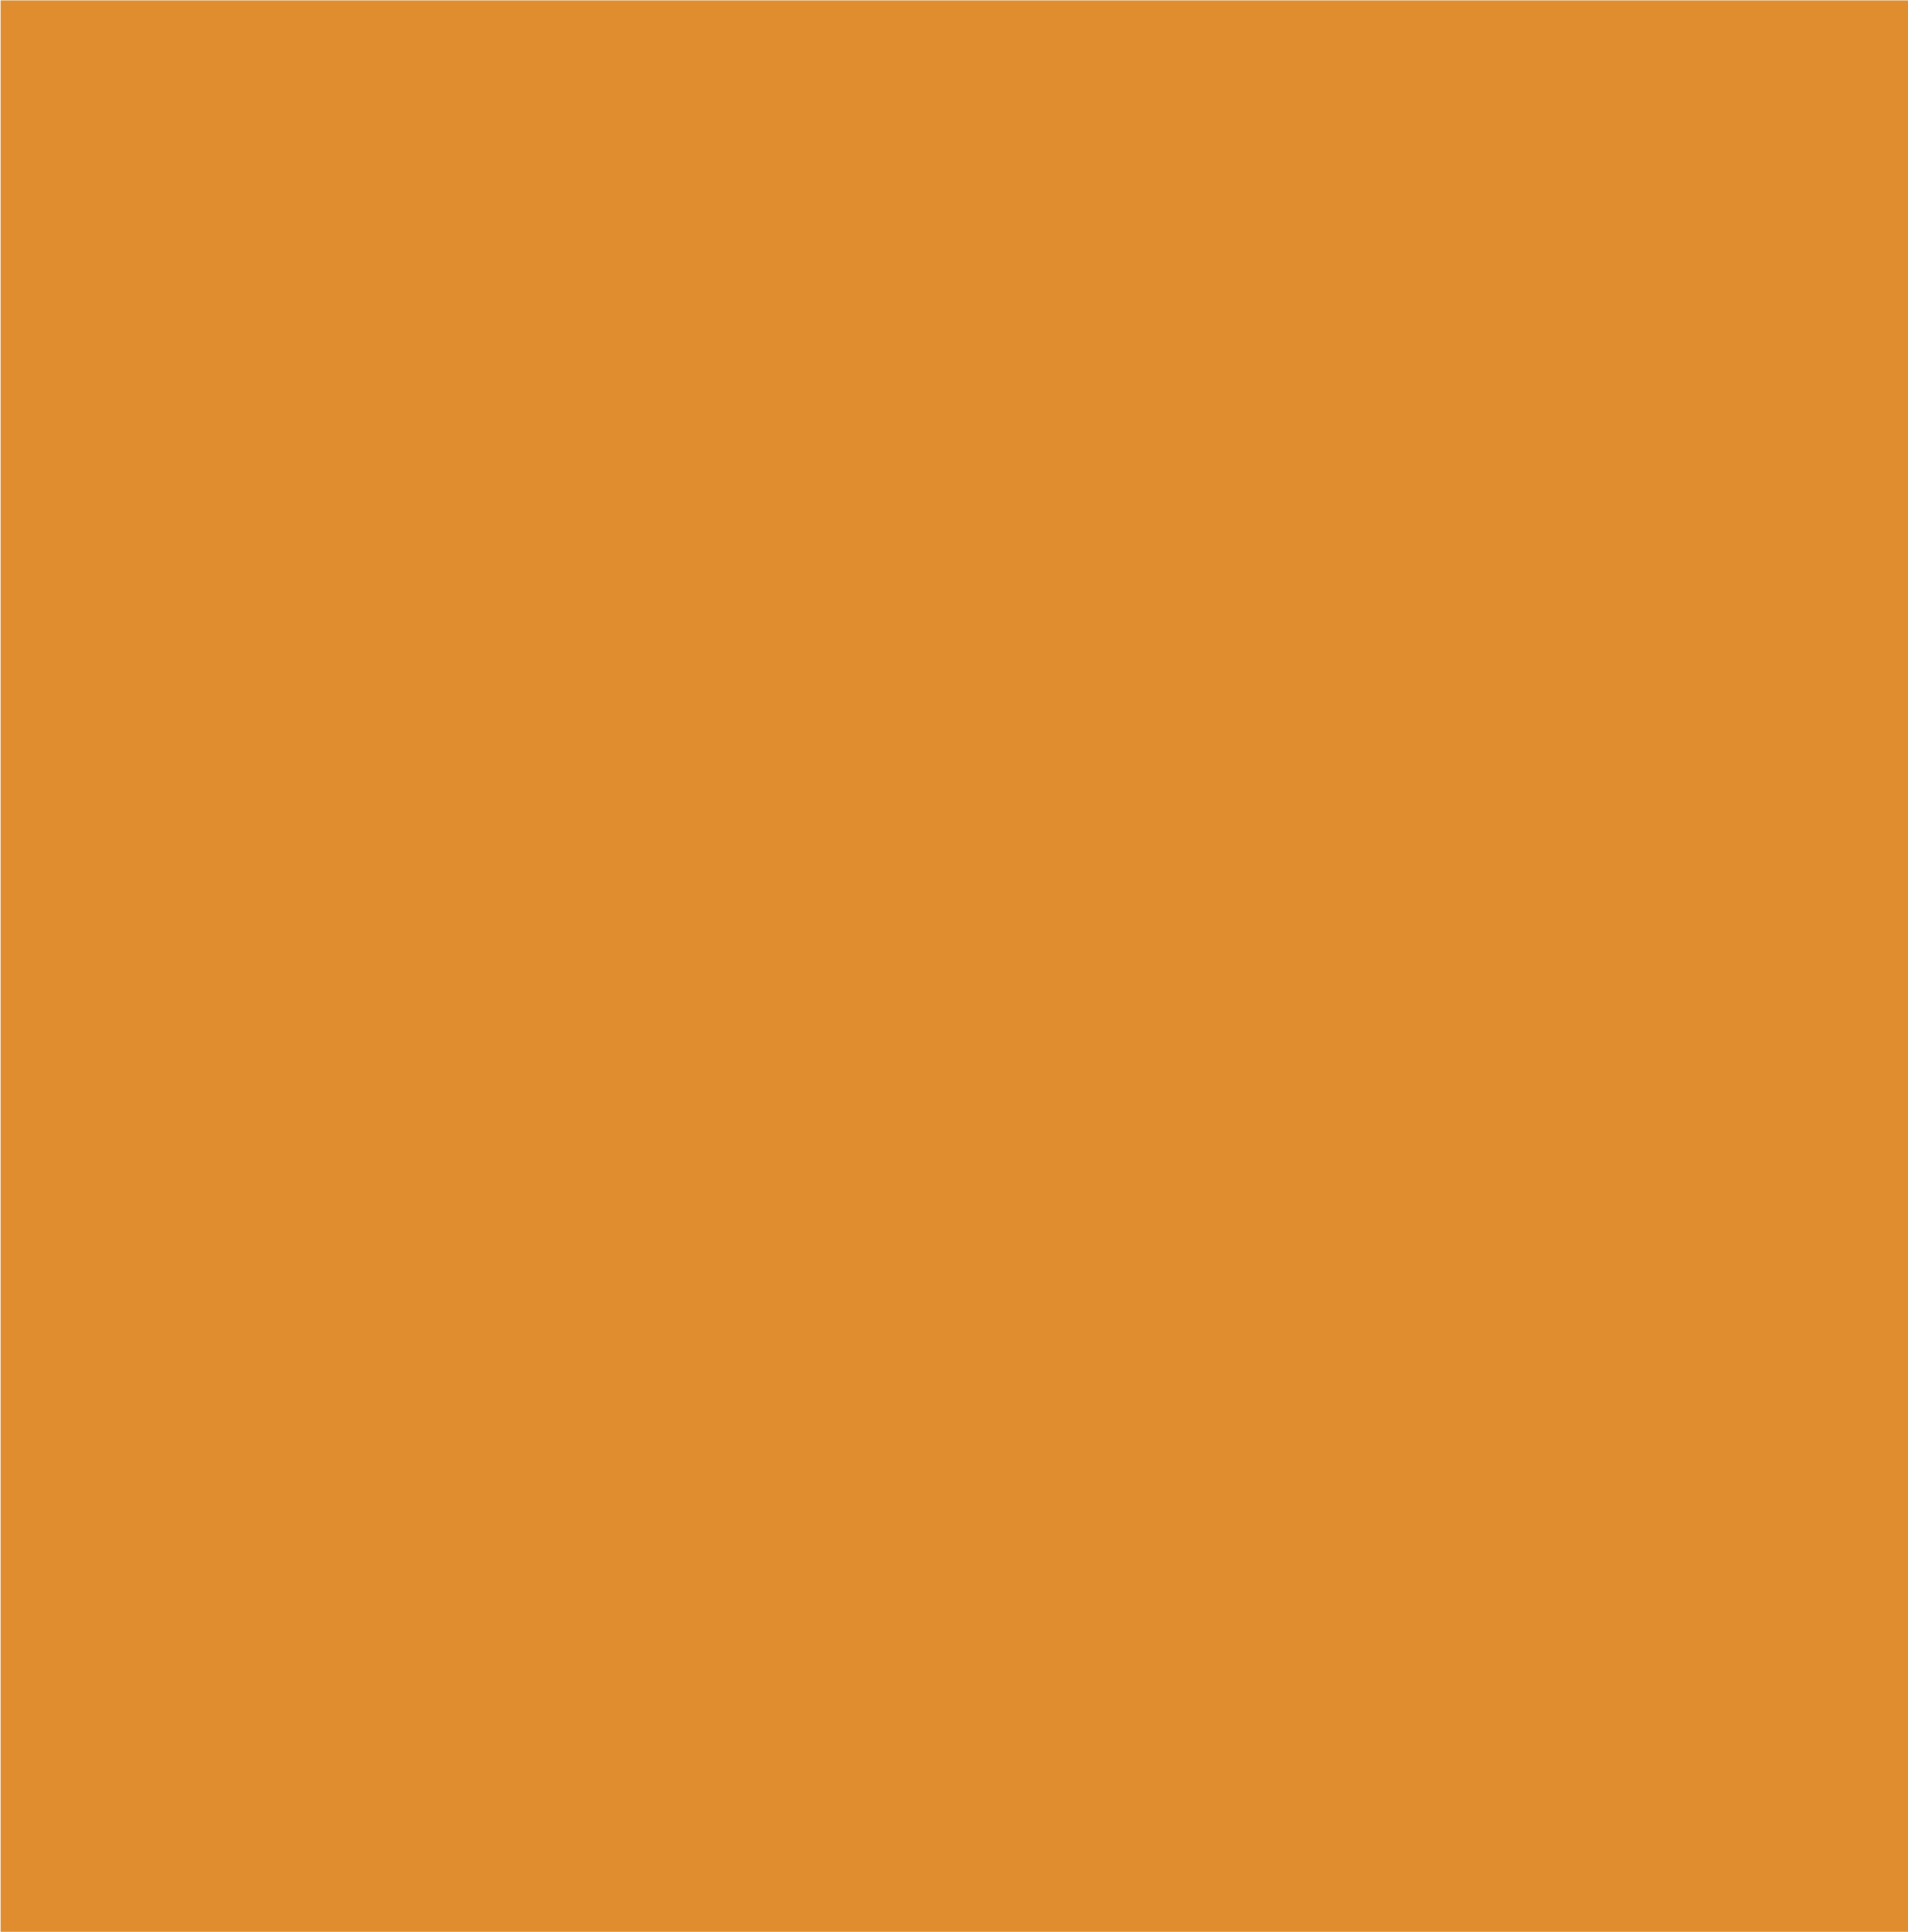 Orange from the secondary color palette.